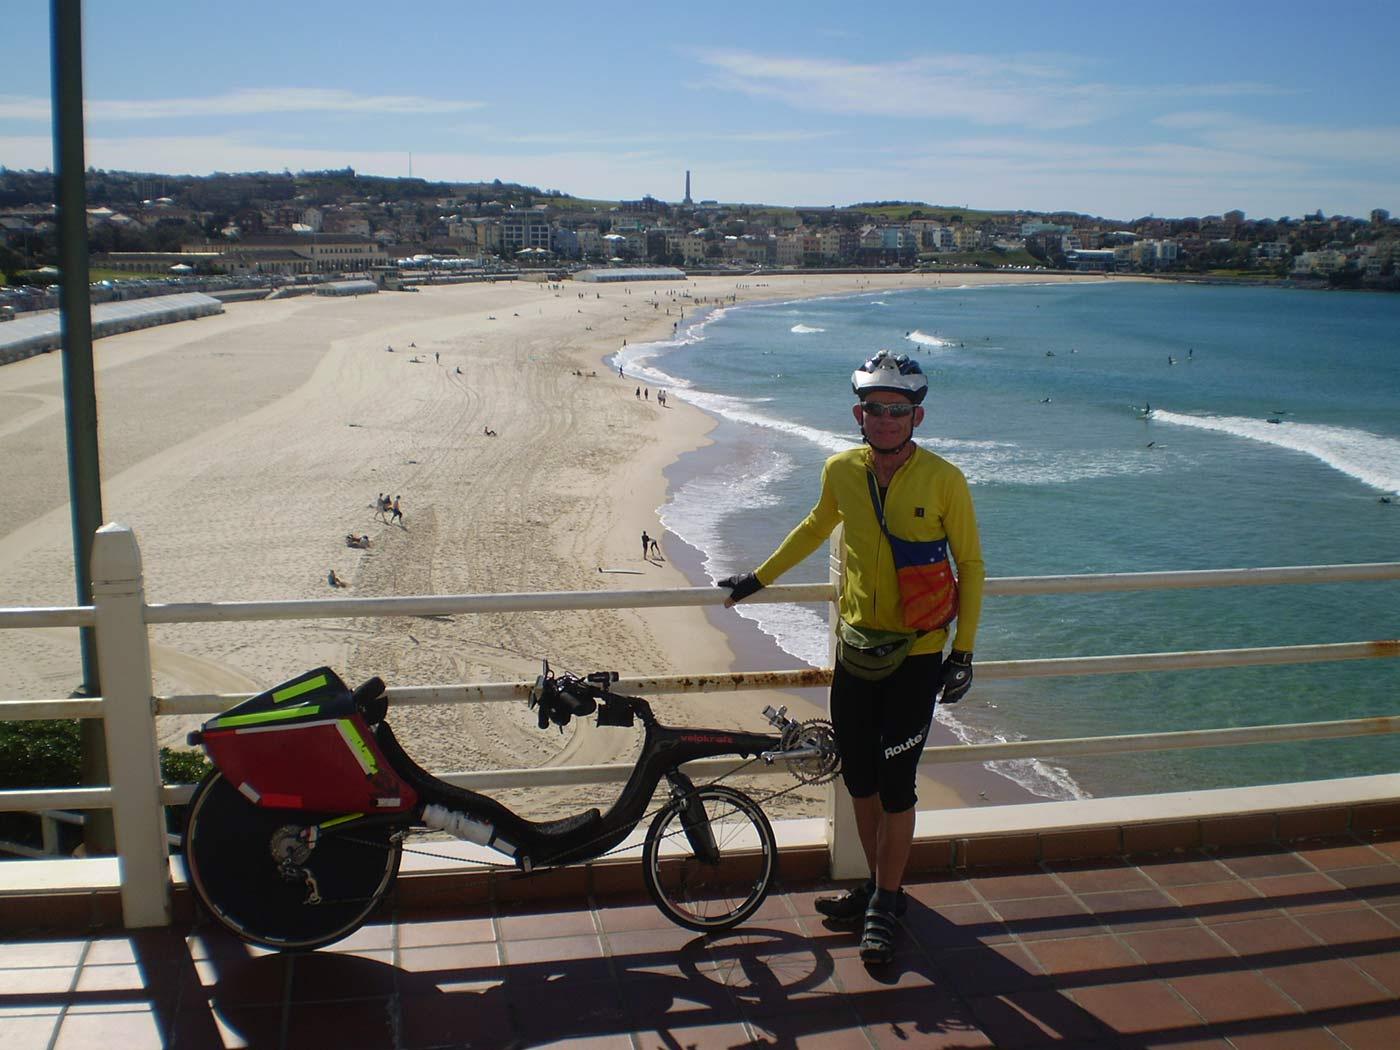 Colour photograph of a cyclist standing beside a recumbent bicycle. Bondi Beach is visible in the background. - click to view larger image